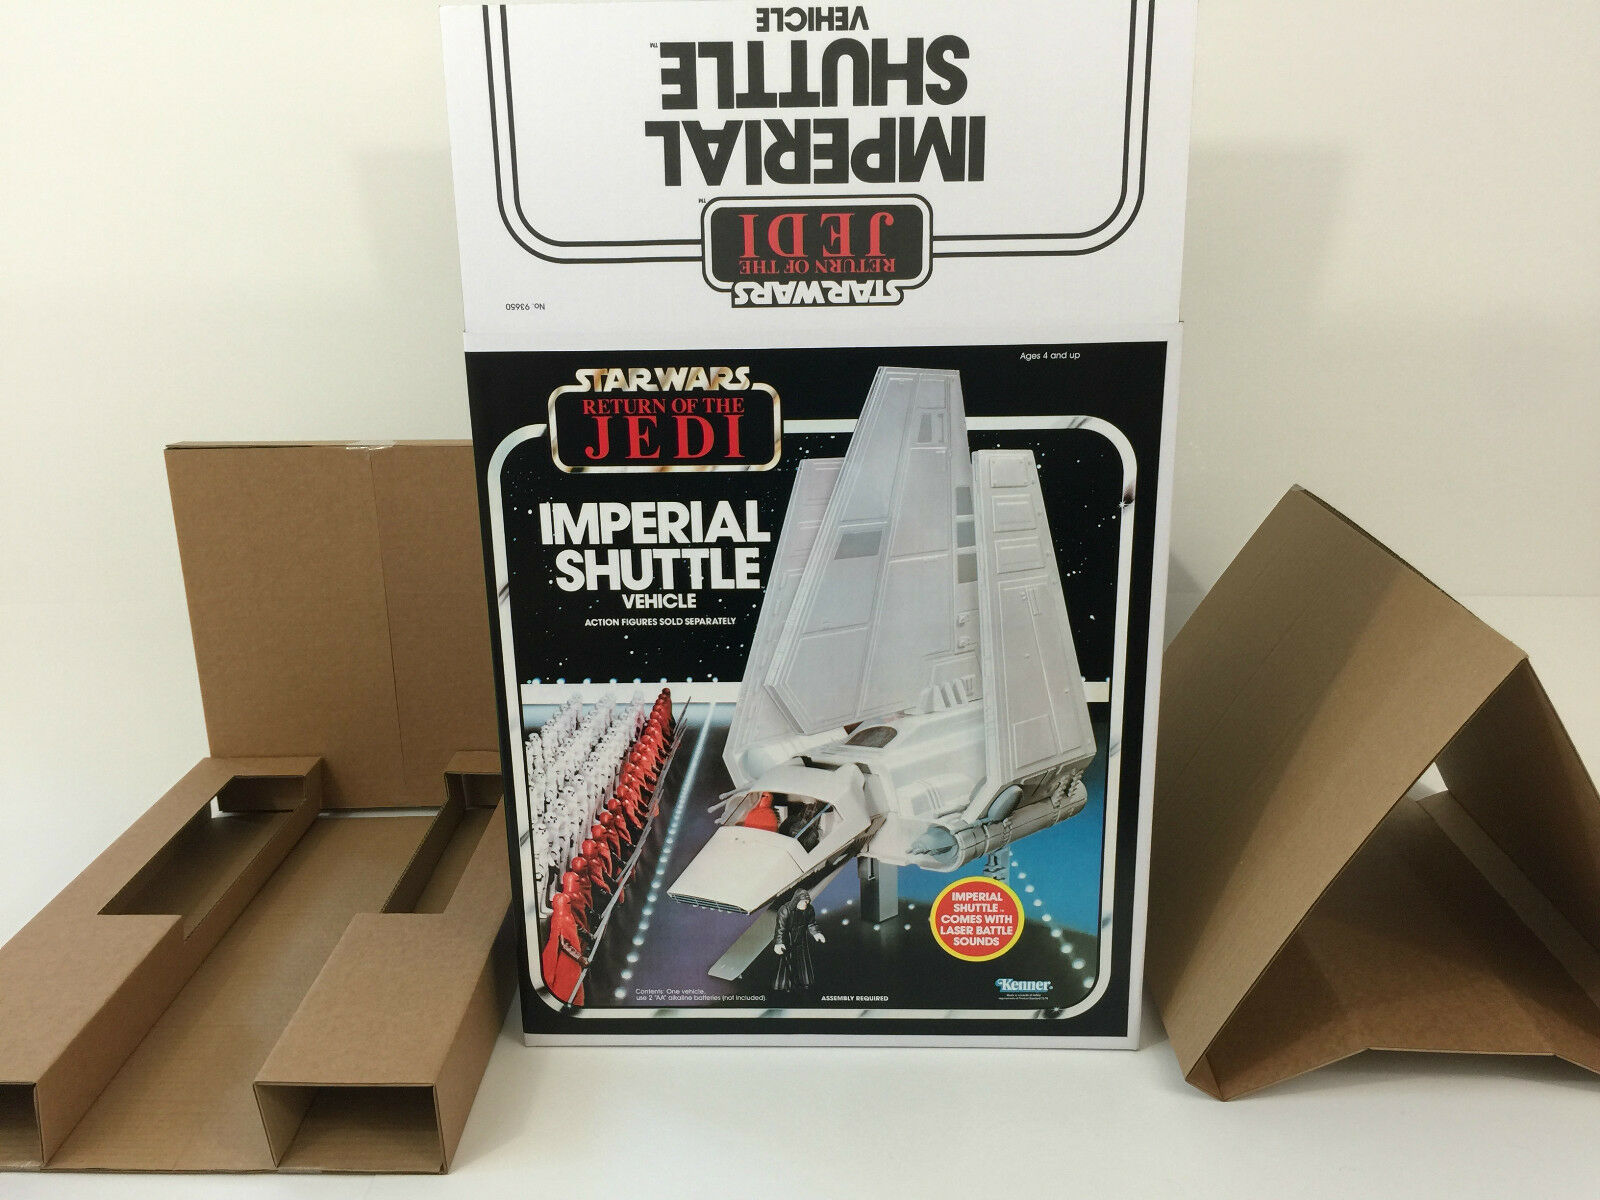 Replacement vintage star wars redj kenner imperial shuttle box and inserts